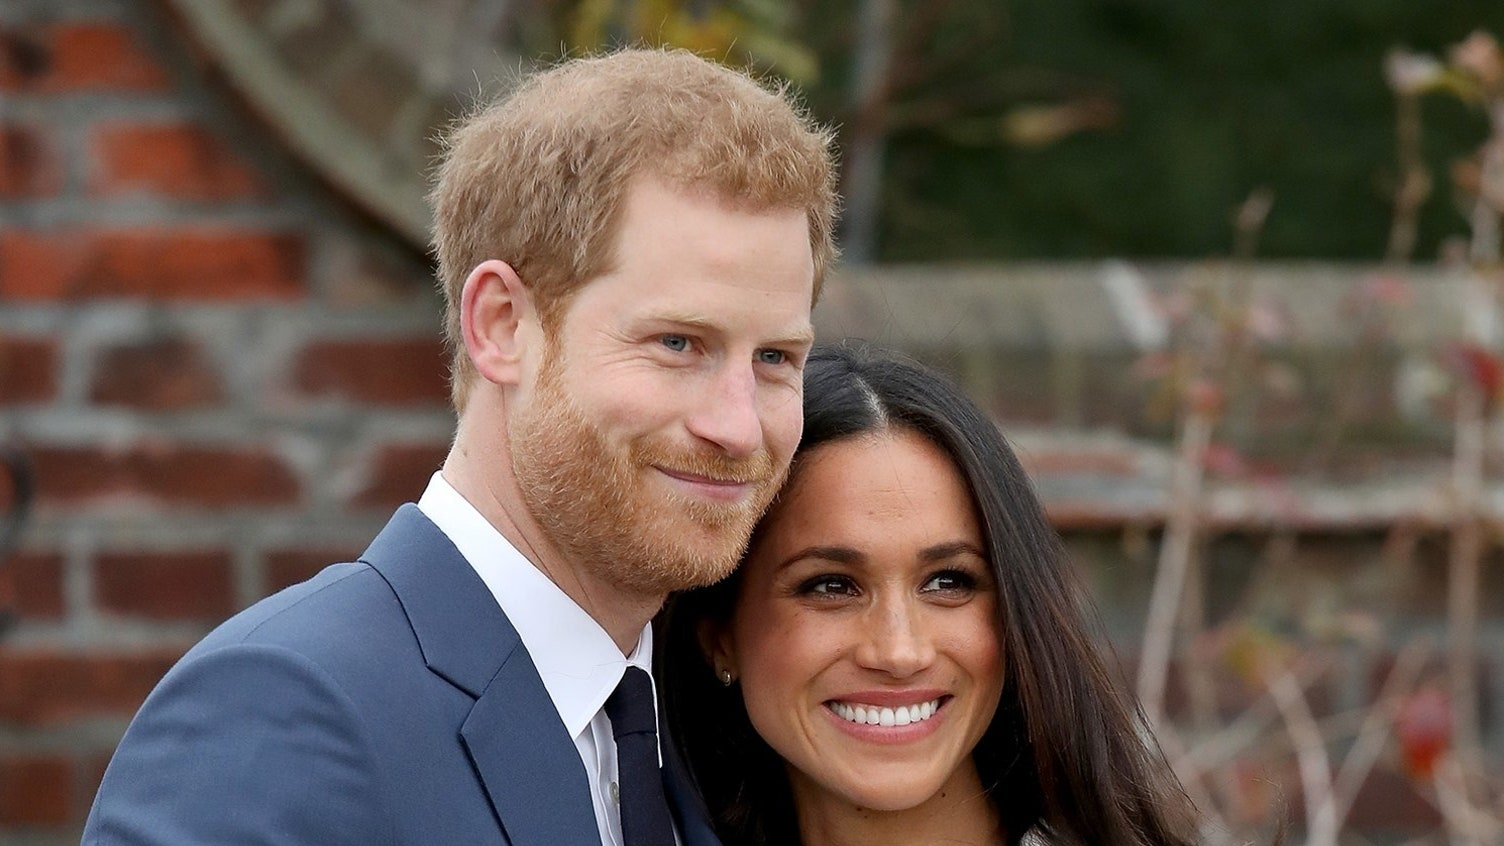 meghan-markle-and-prince-harry-source-says-the-inauguration-is-very-personal-for-them-heres-why